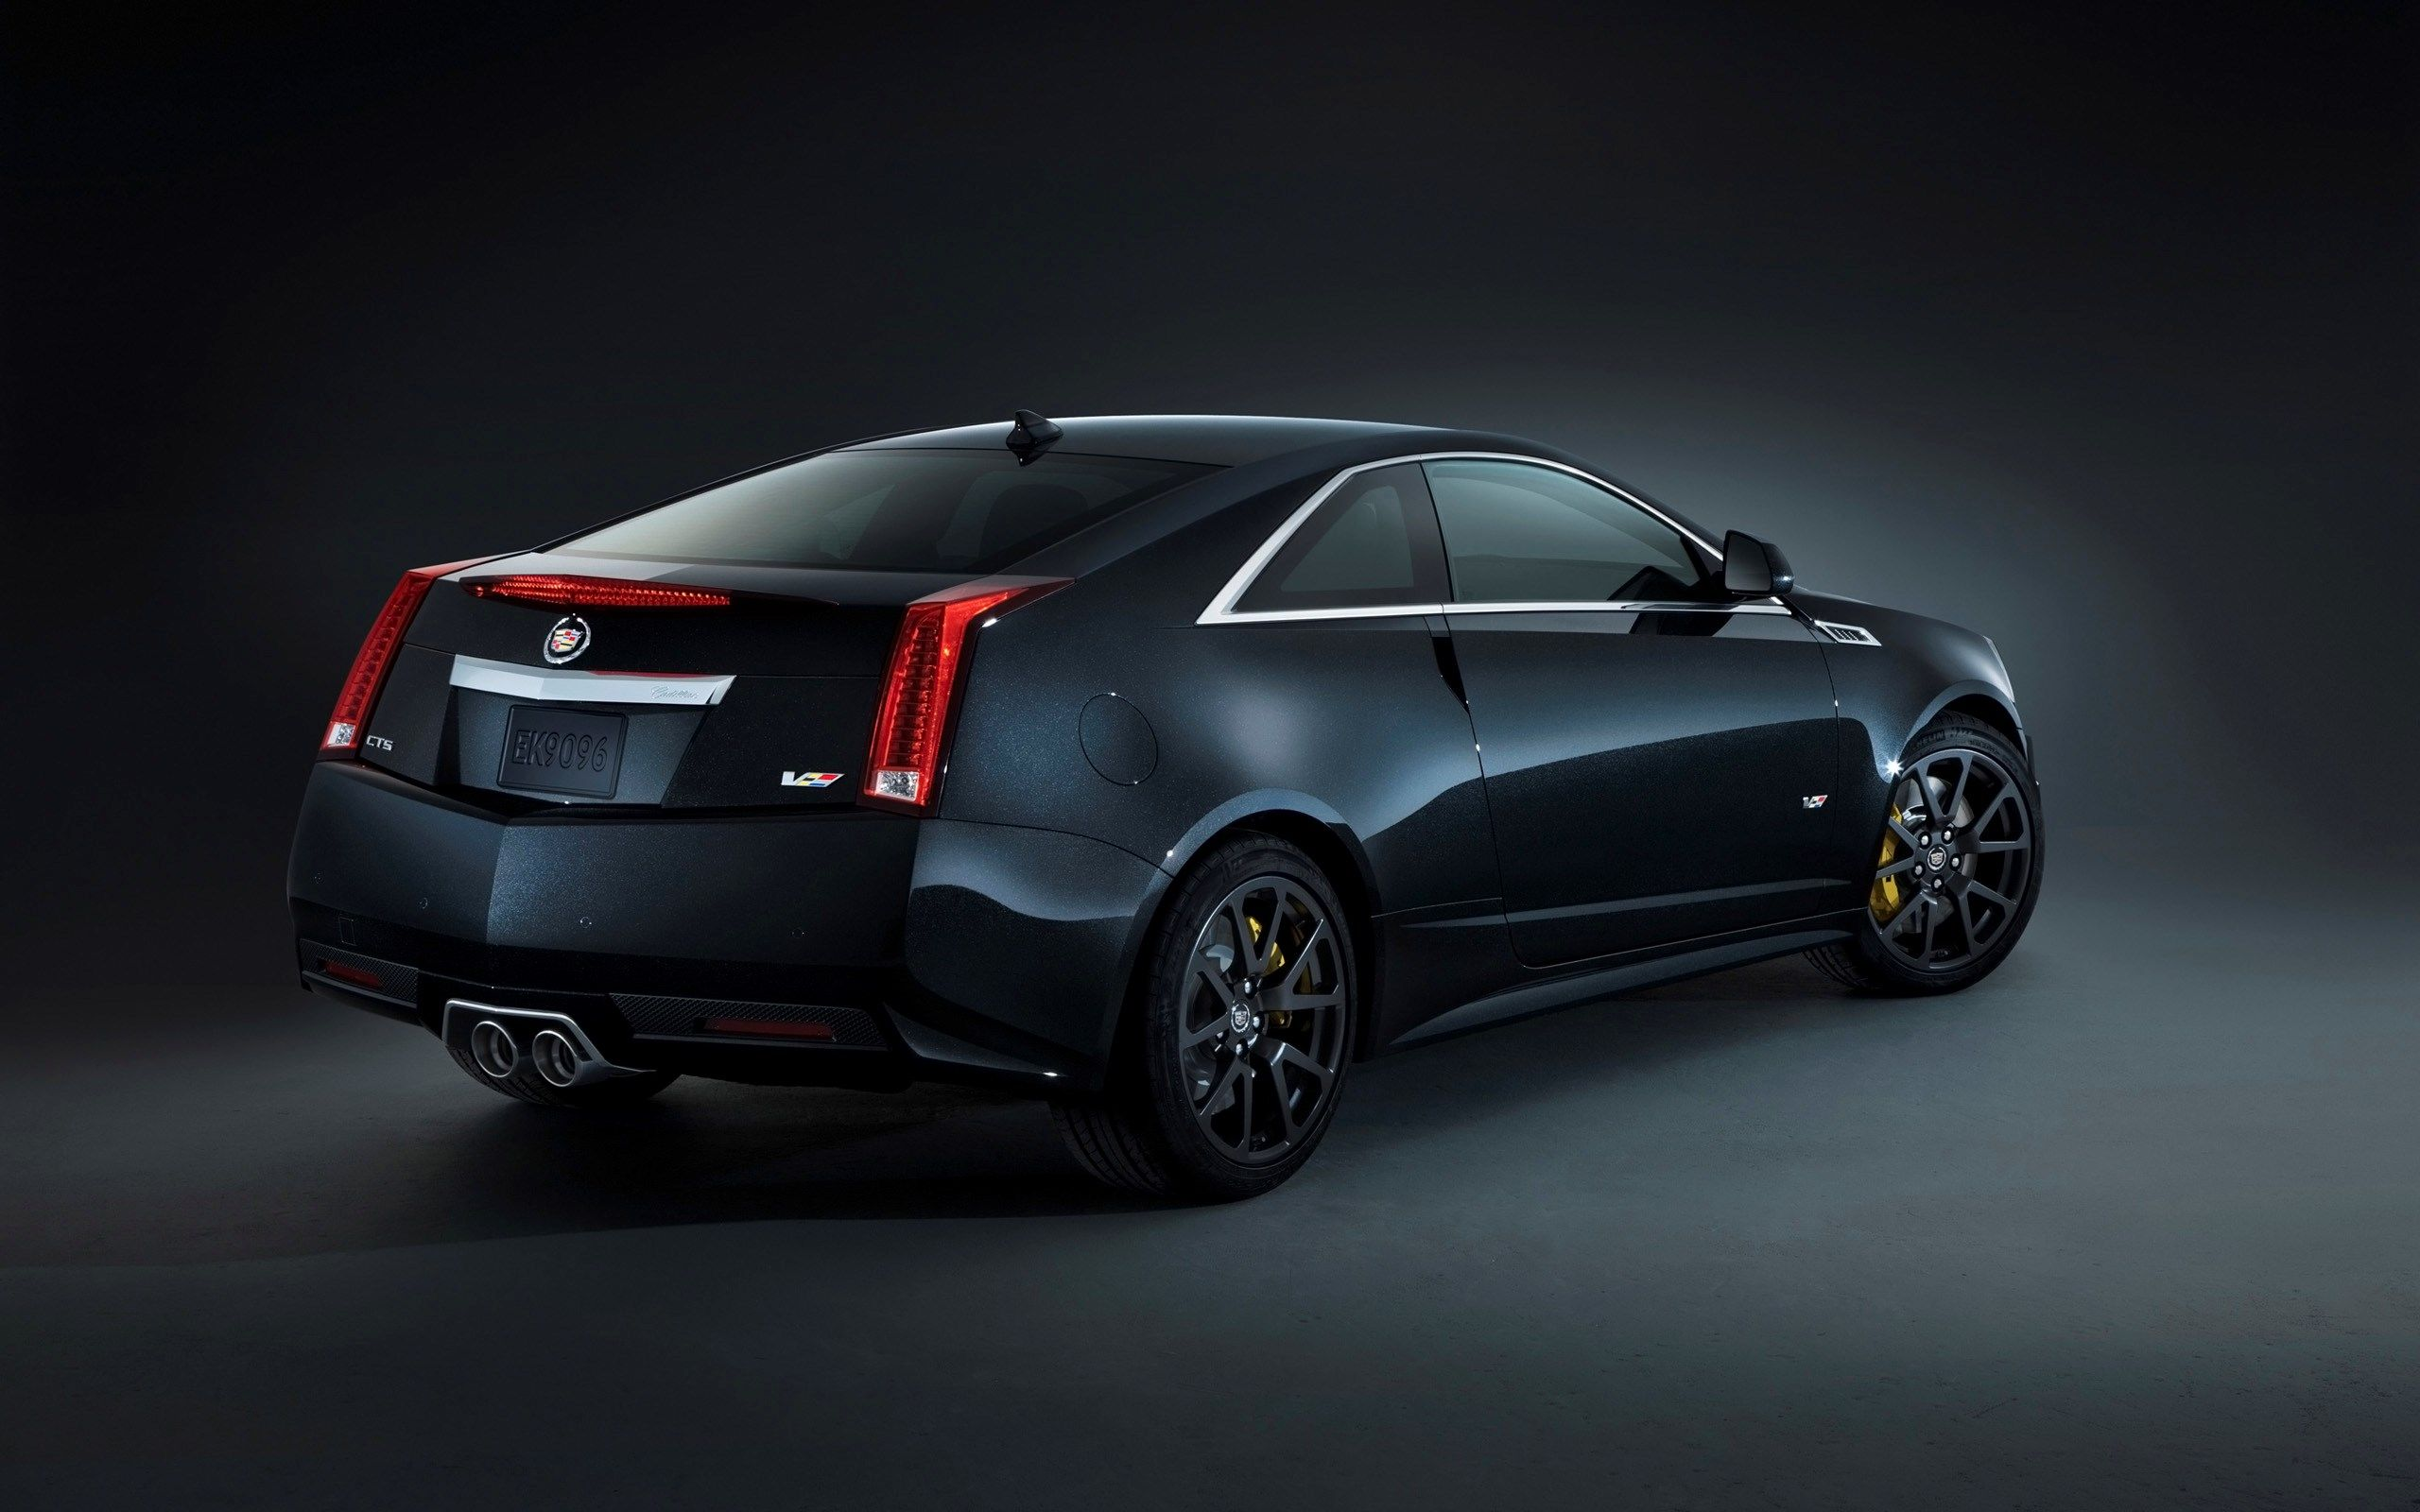 cadillac wagon cts sport niche series milan car on g htm door wheels